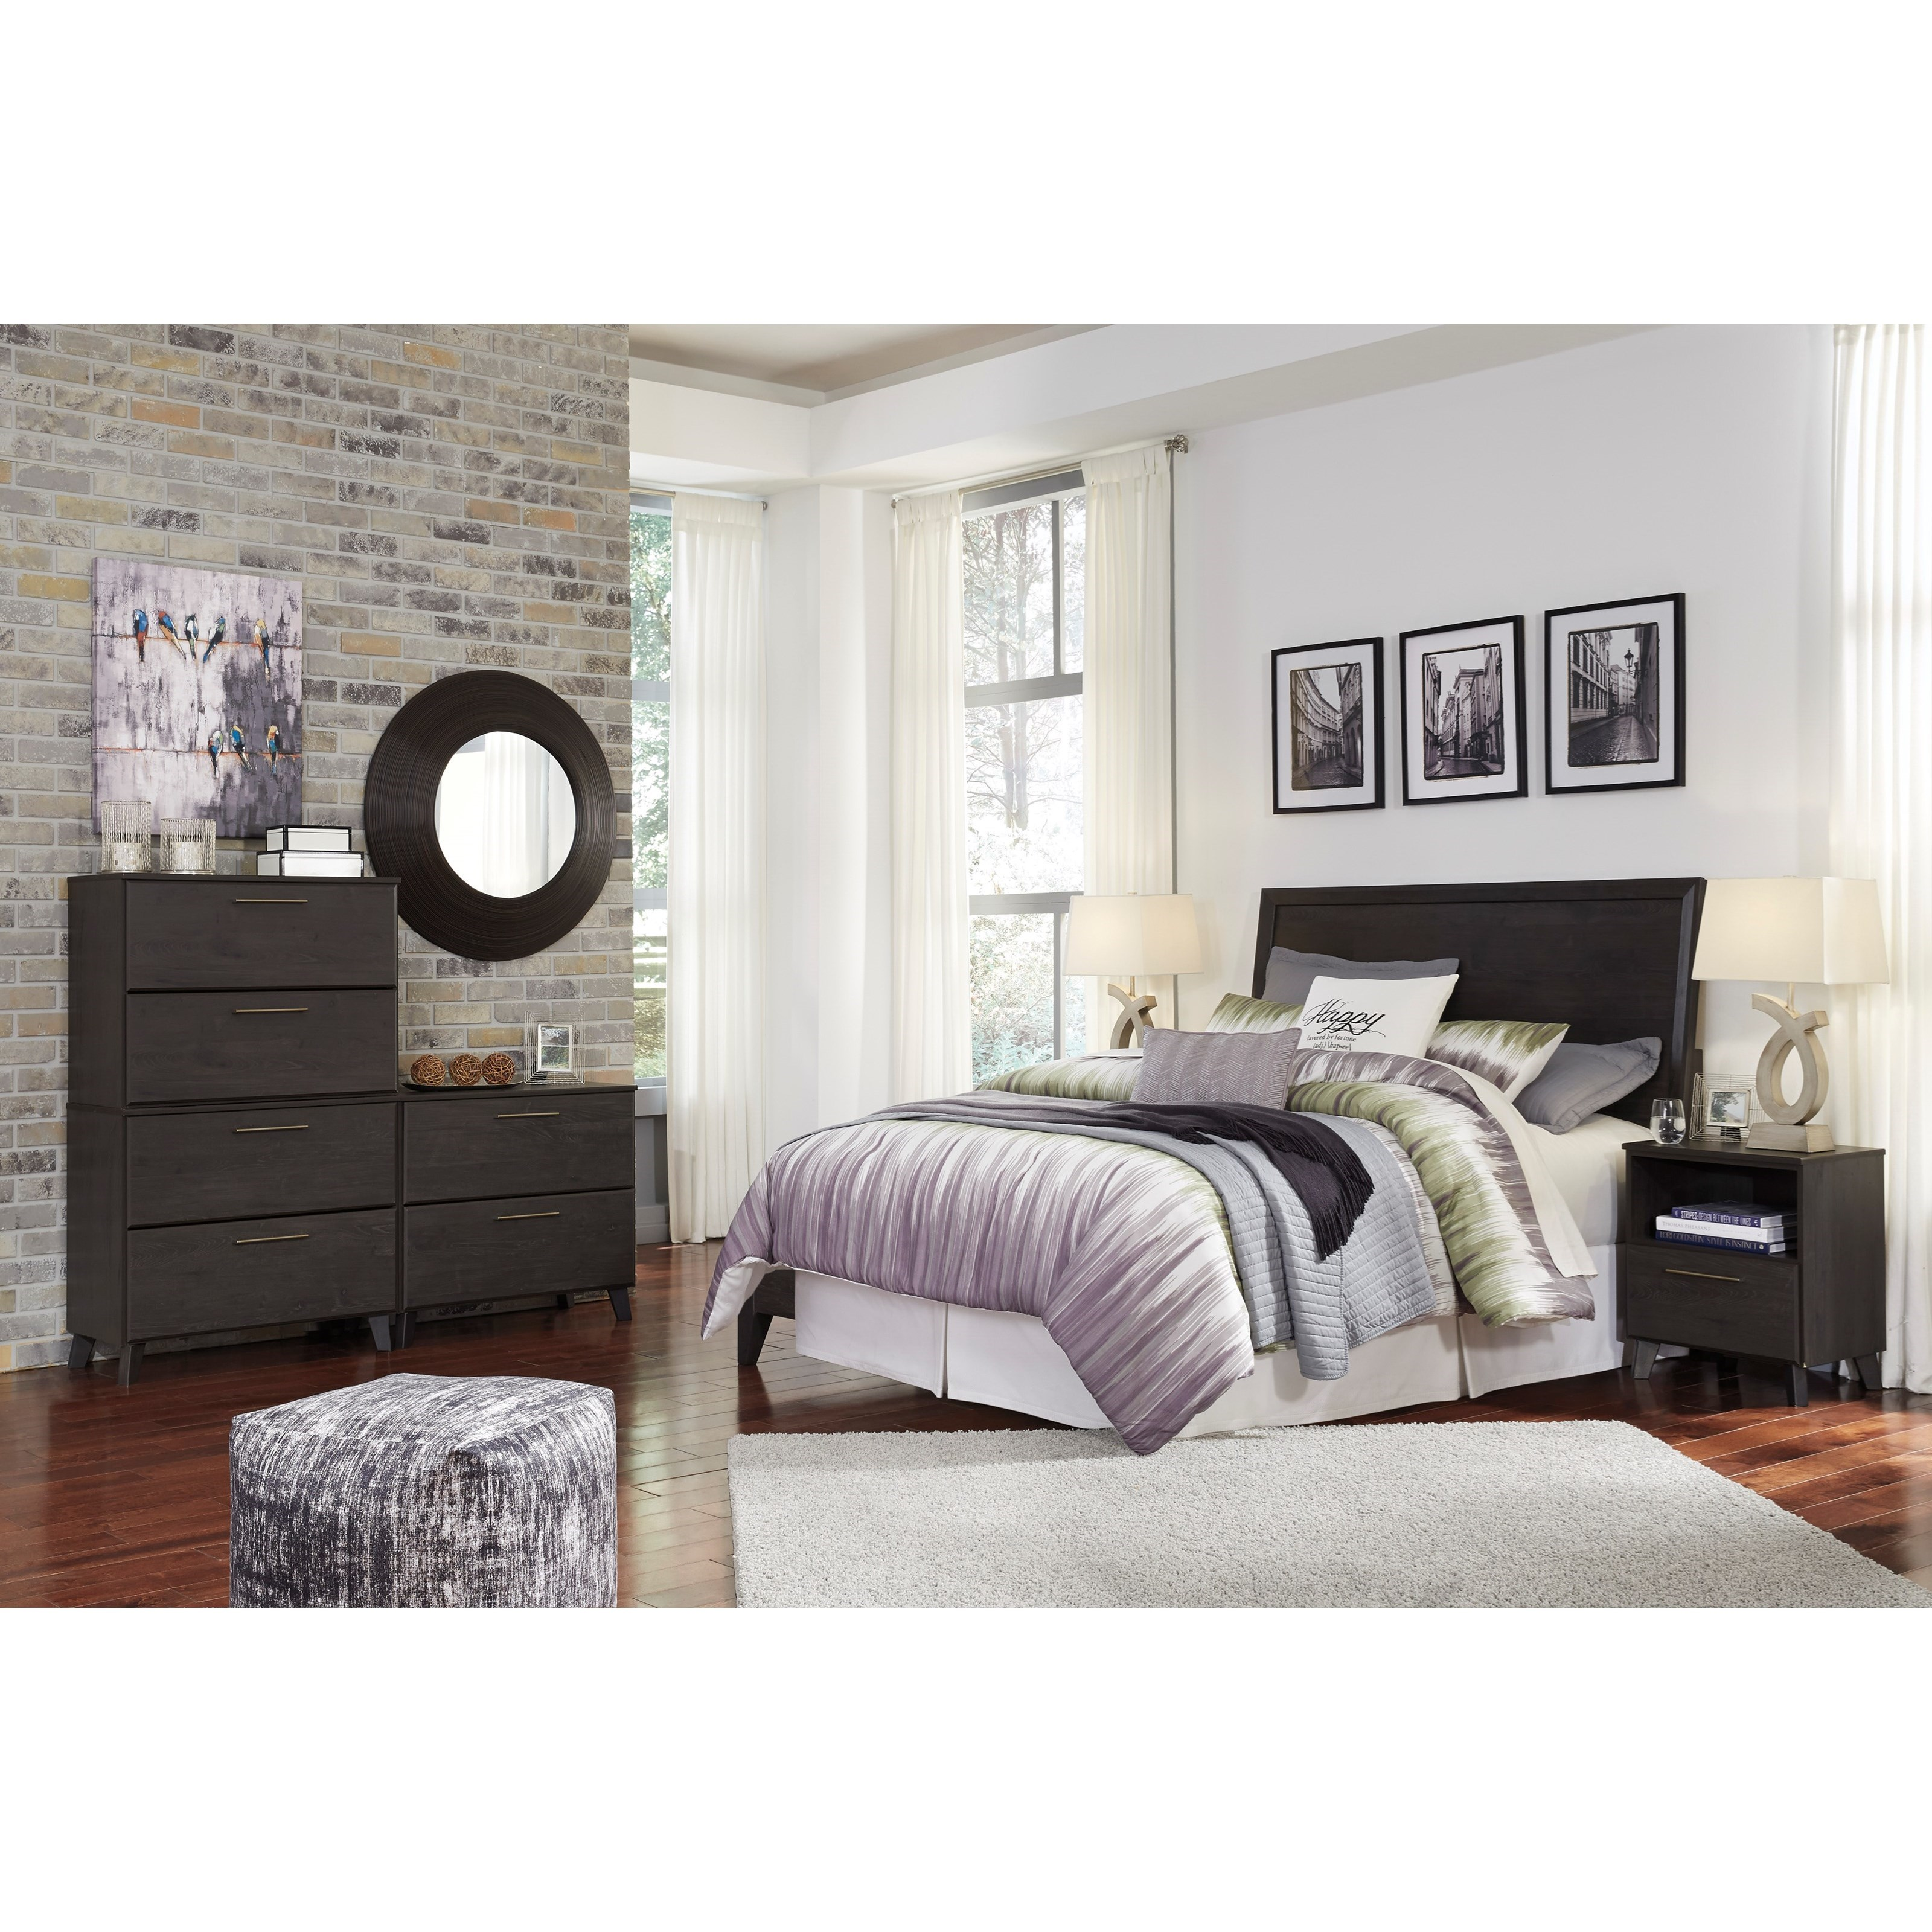 Signature design by ashley daltori queen bedroom group for Bedroom furniture groups